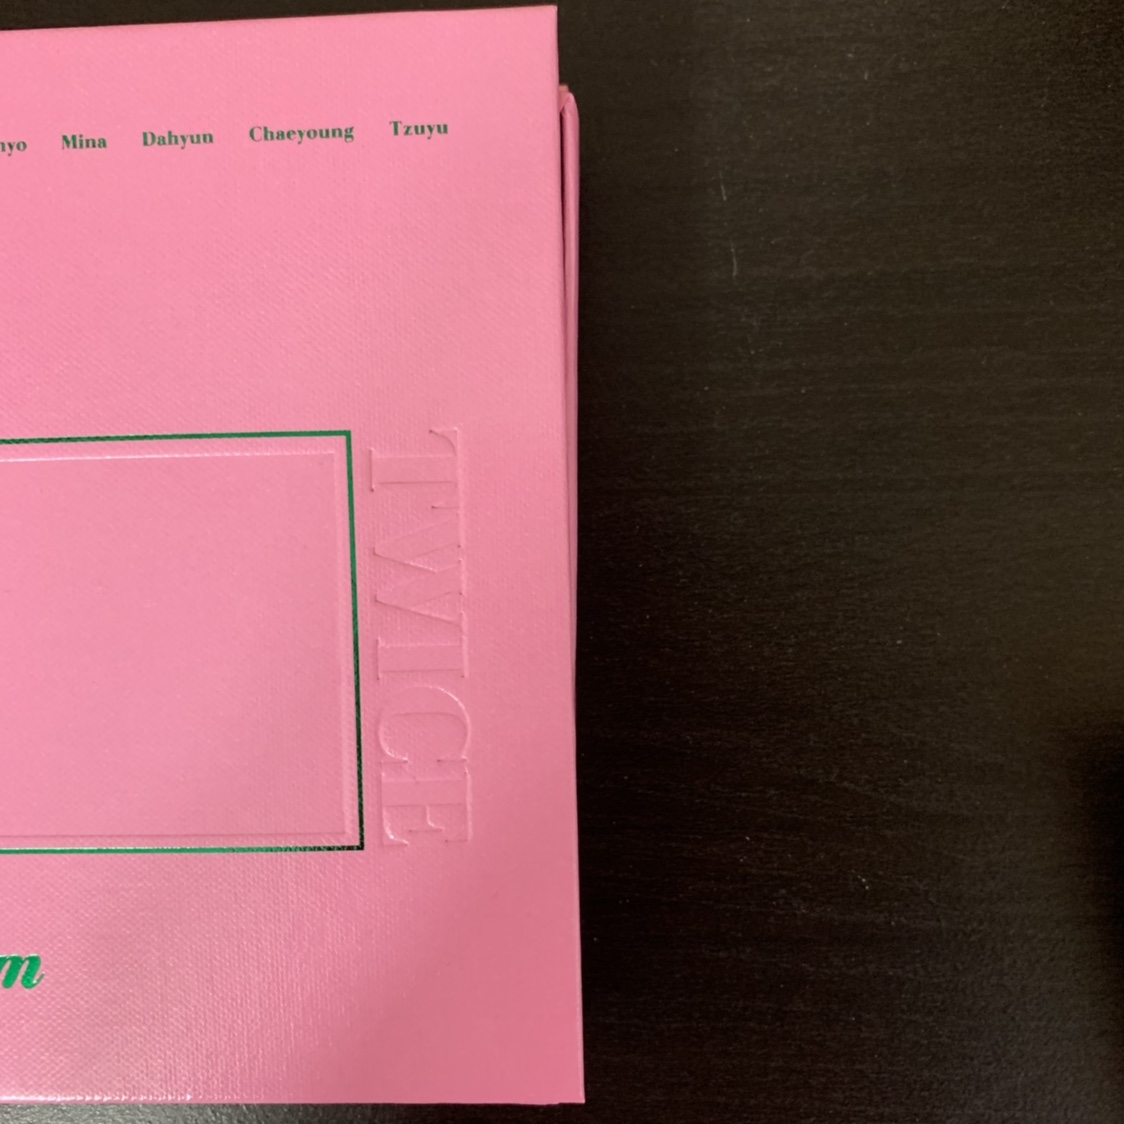 twice twicetagram album: pink ver - includes    - Depop